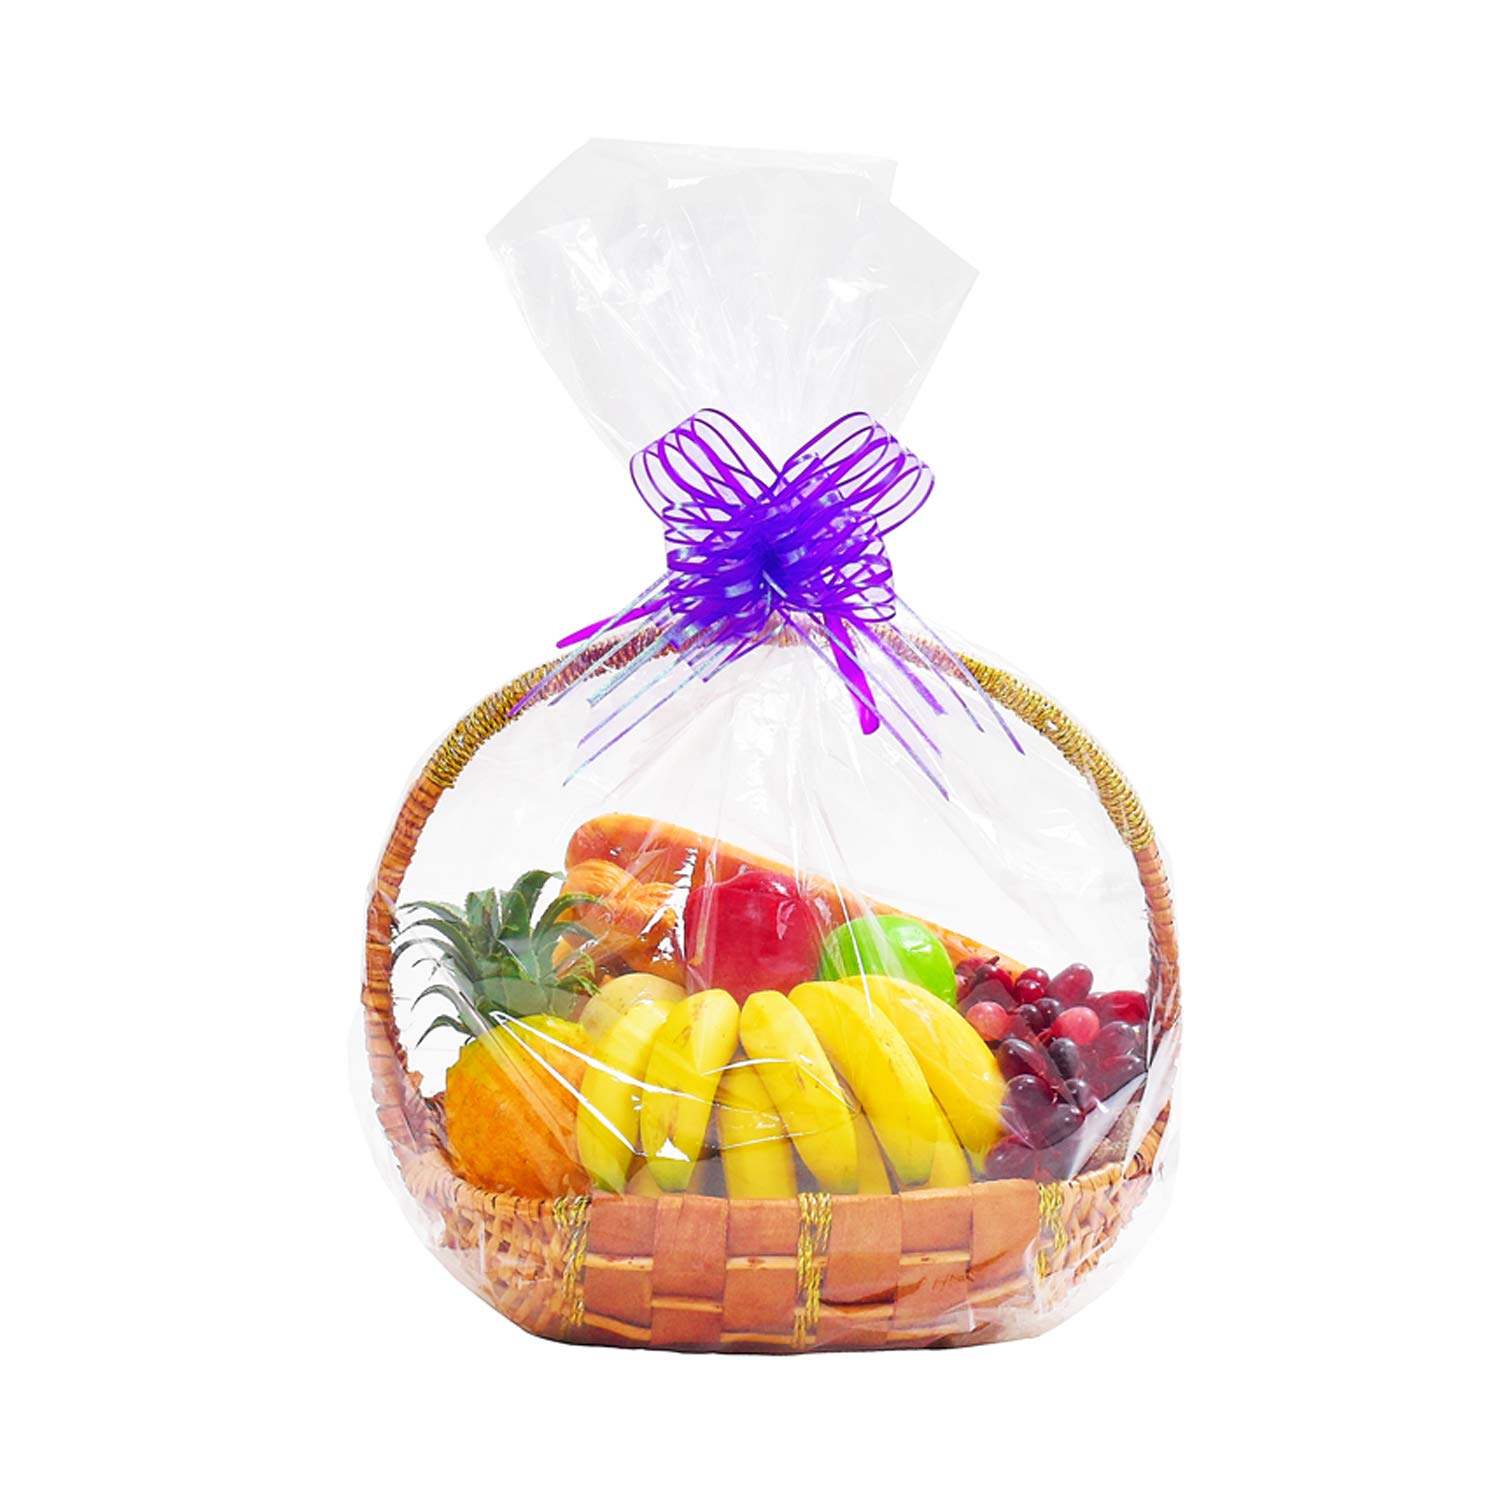 Clear Basket Cellophane Wrap Bags Shrink Wrap Bags Extra Thick 2 5mil Cello Bags For Gift Baskets 24x30